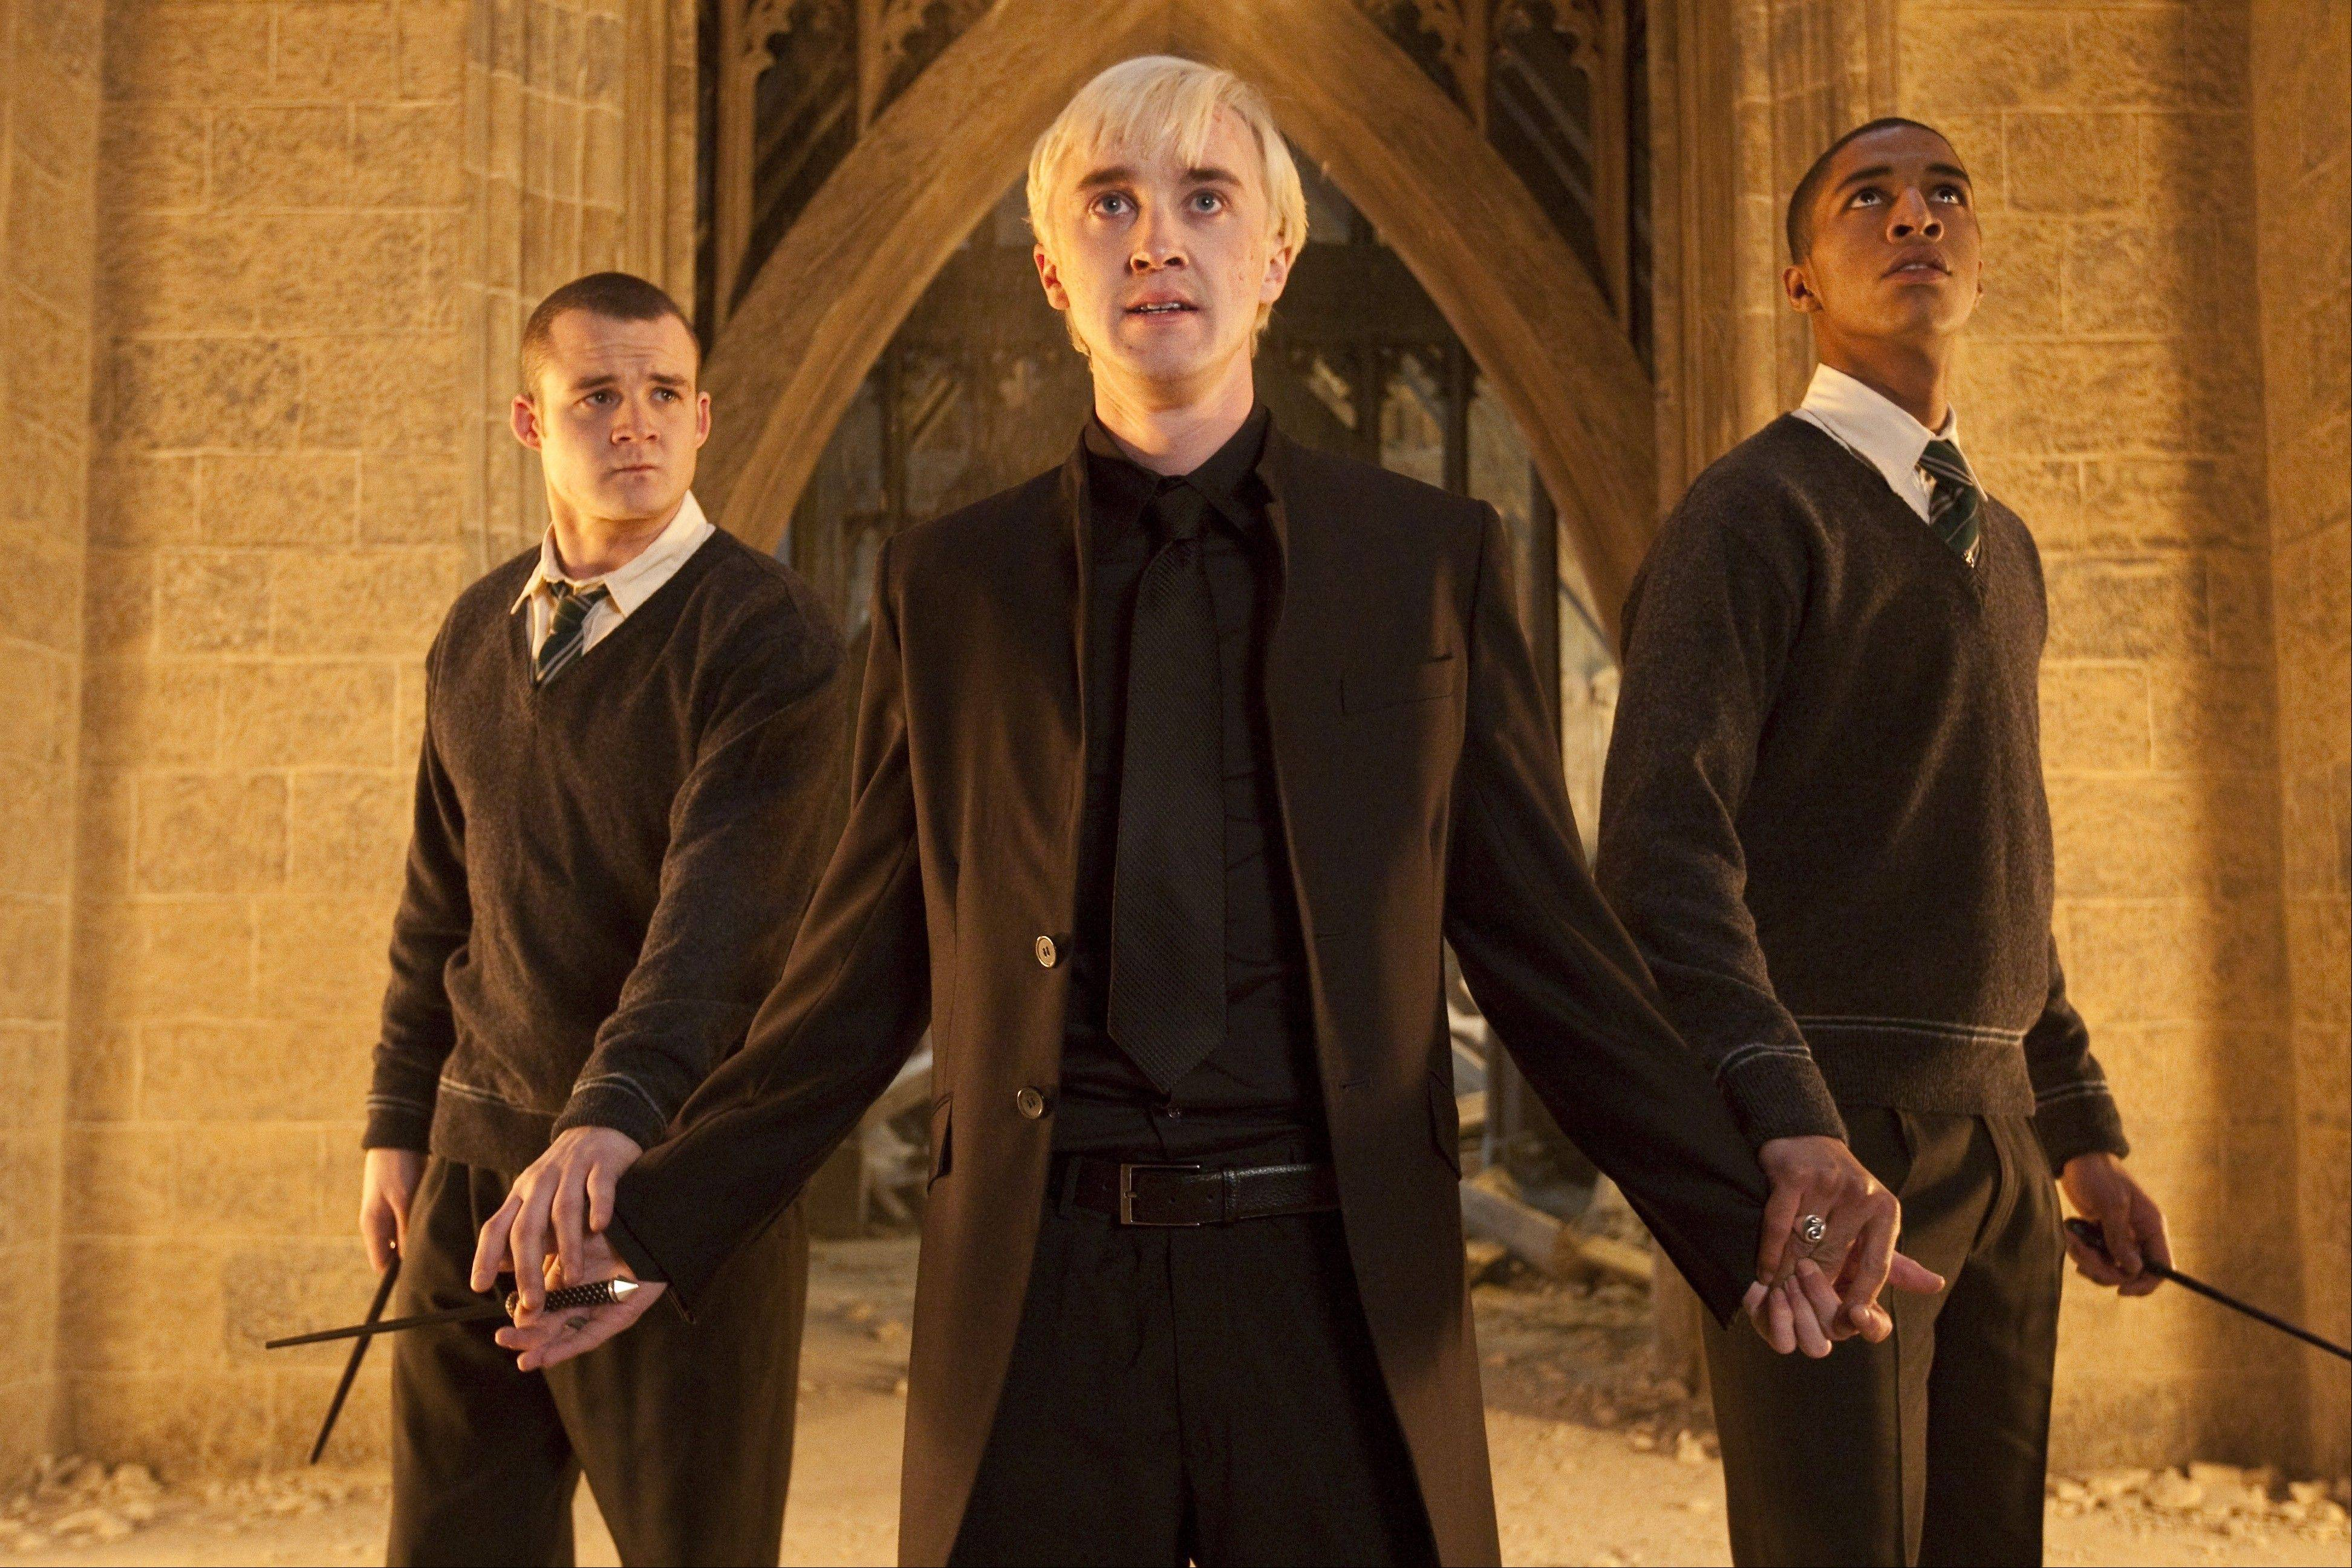 Tom Felton, center, will head to Naperville and Woodridge this weekend to meet with fans. The actor, now 23, has played Harry Potter rival Draco Malfoy in all eight films.